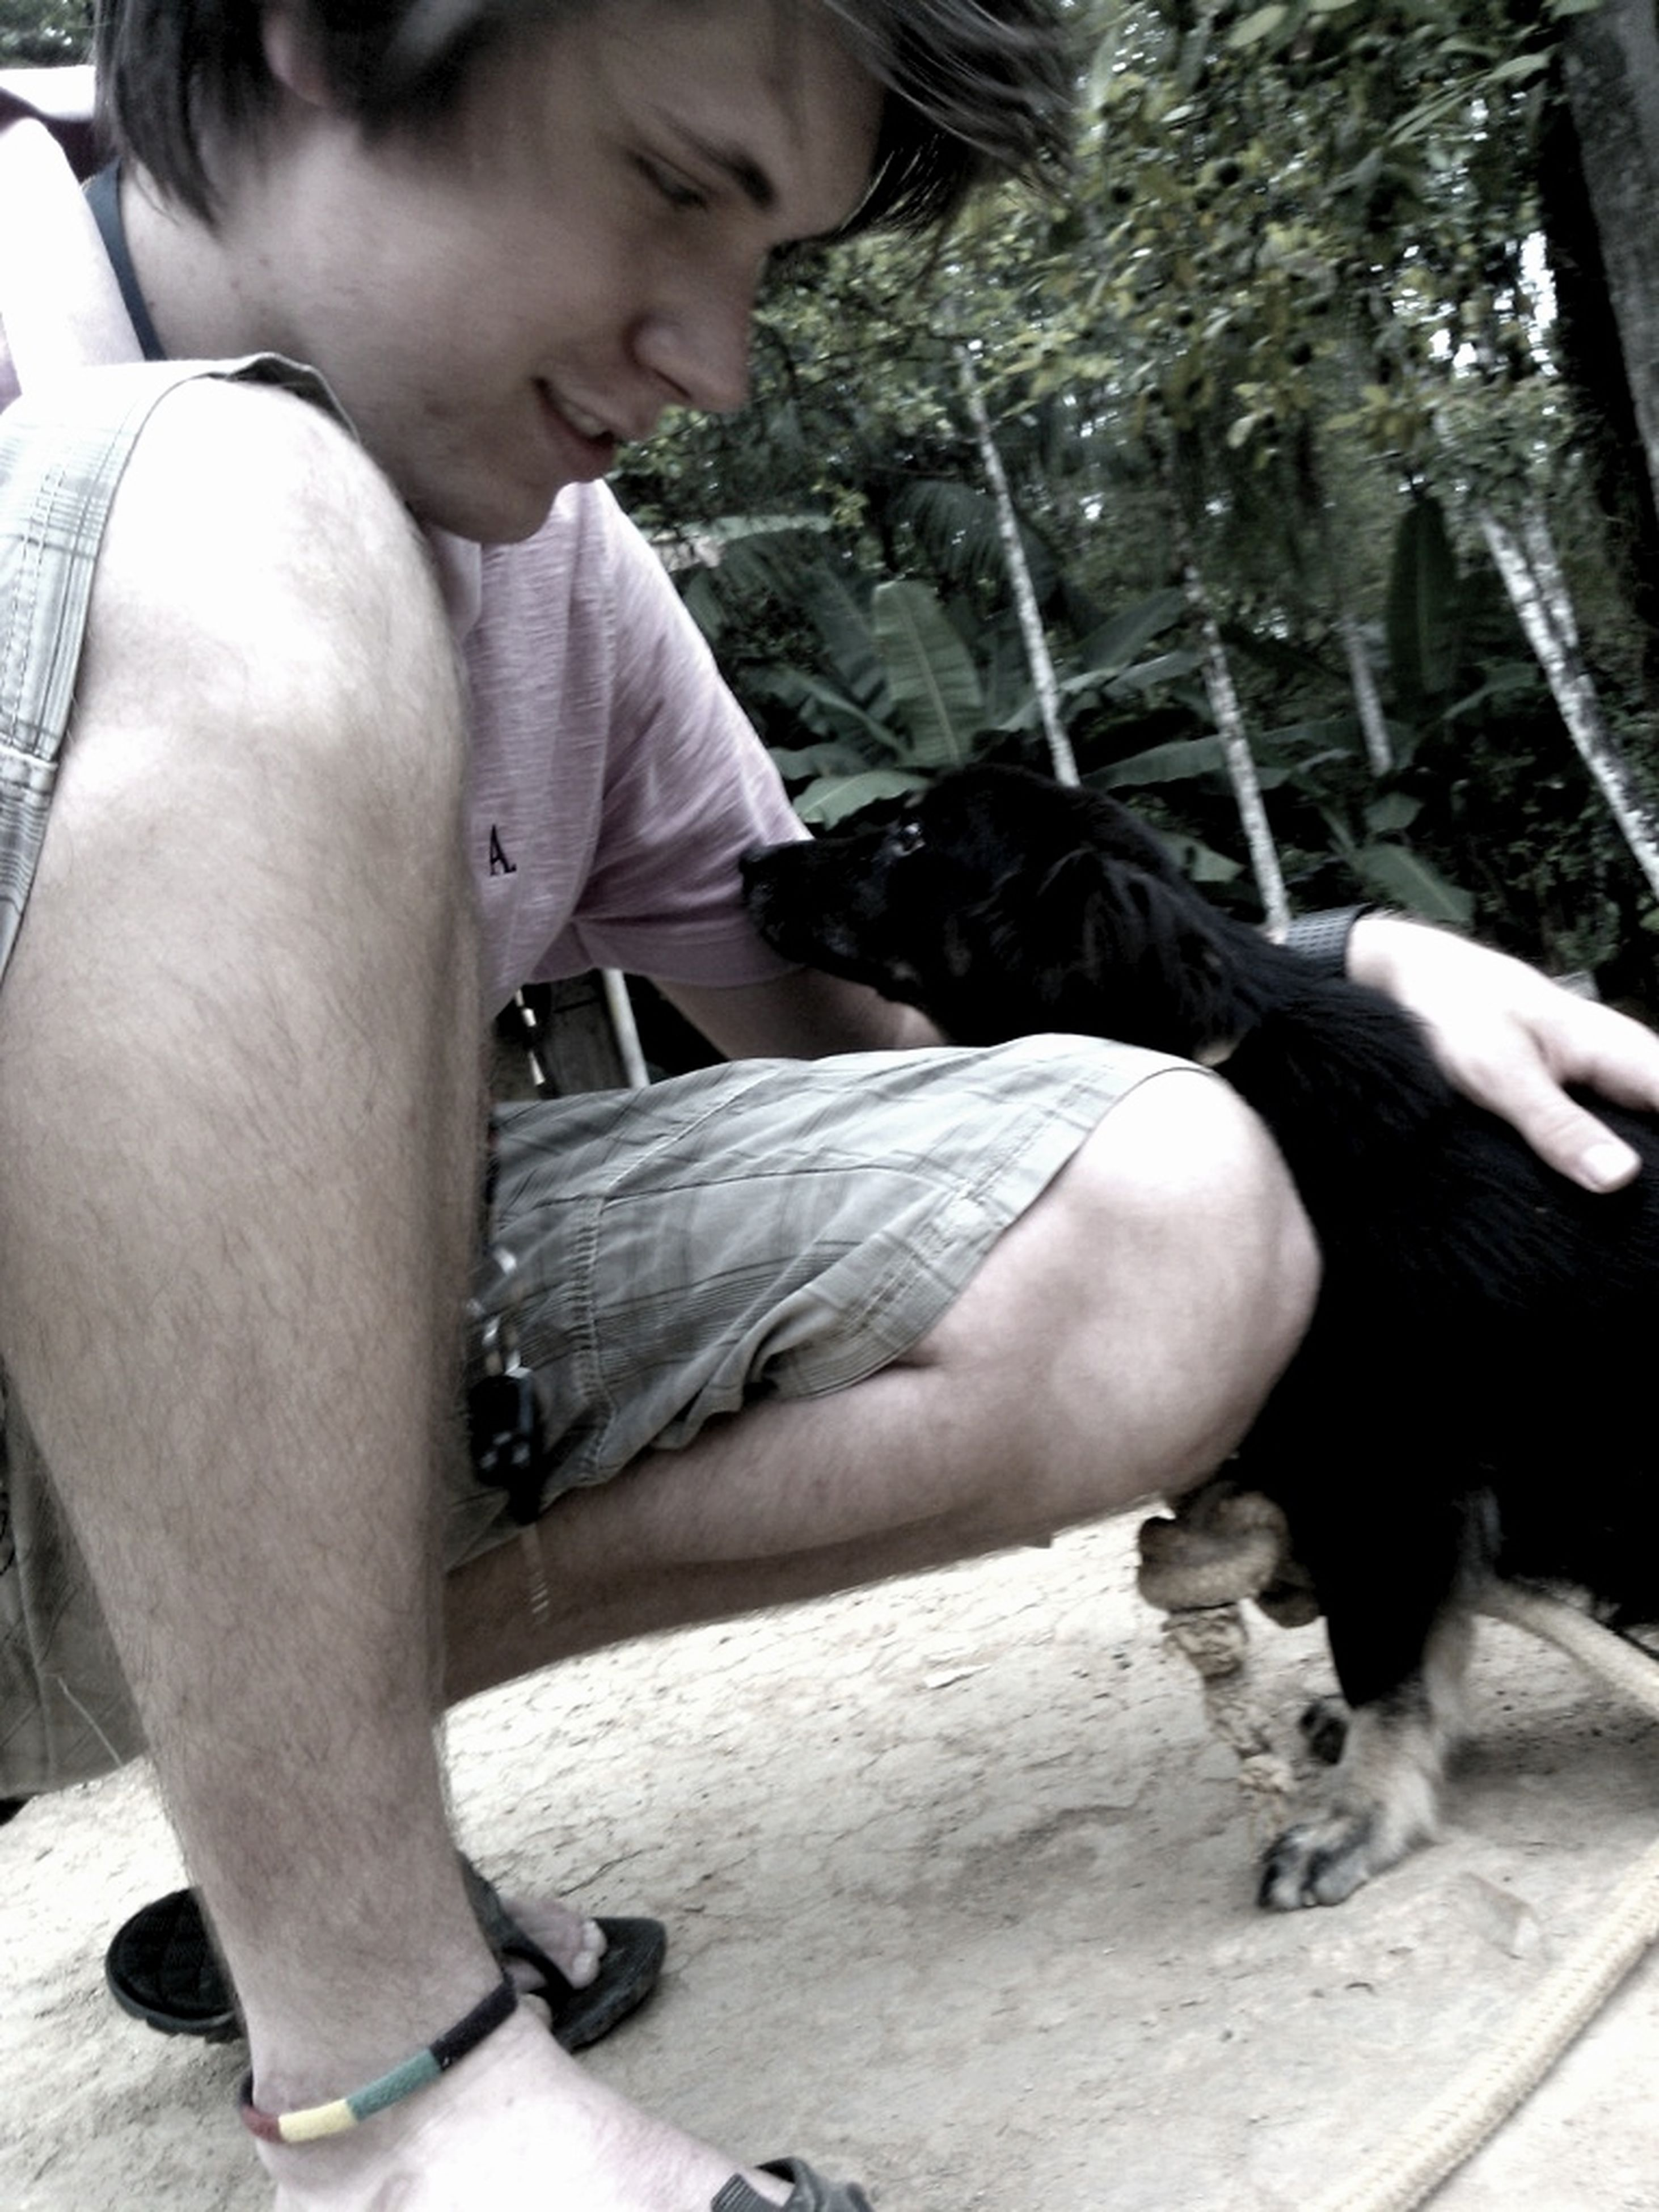 lifestyles, animal themes, leisure activity, person, childhood, casual clothing, one animal, boys, elementary age, pets, togetherness, cute, pet owner, full length, bonding, high angle view, holding